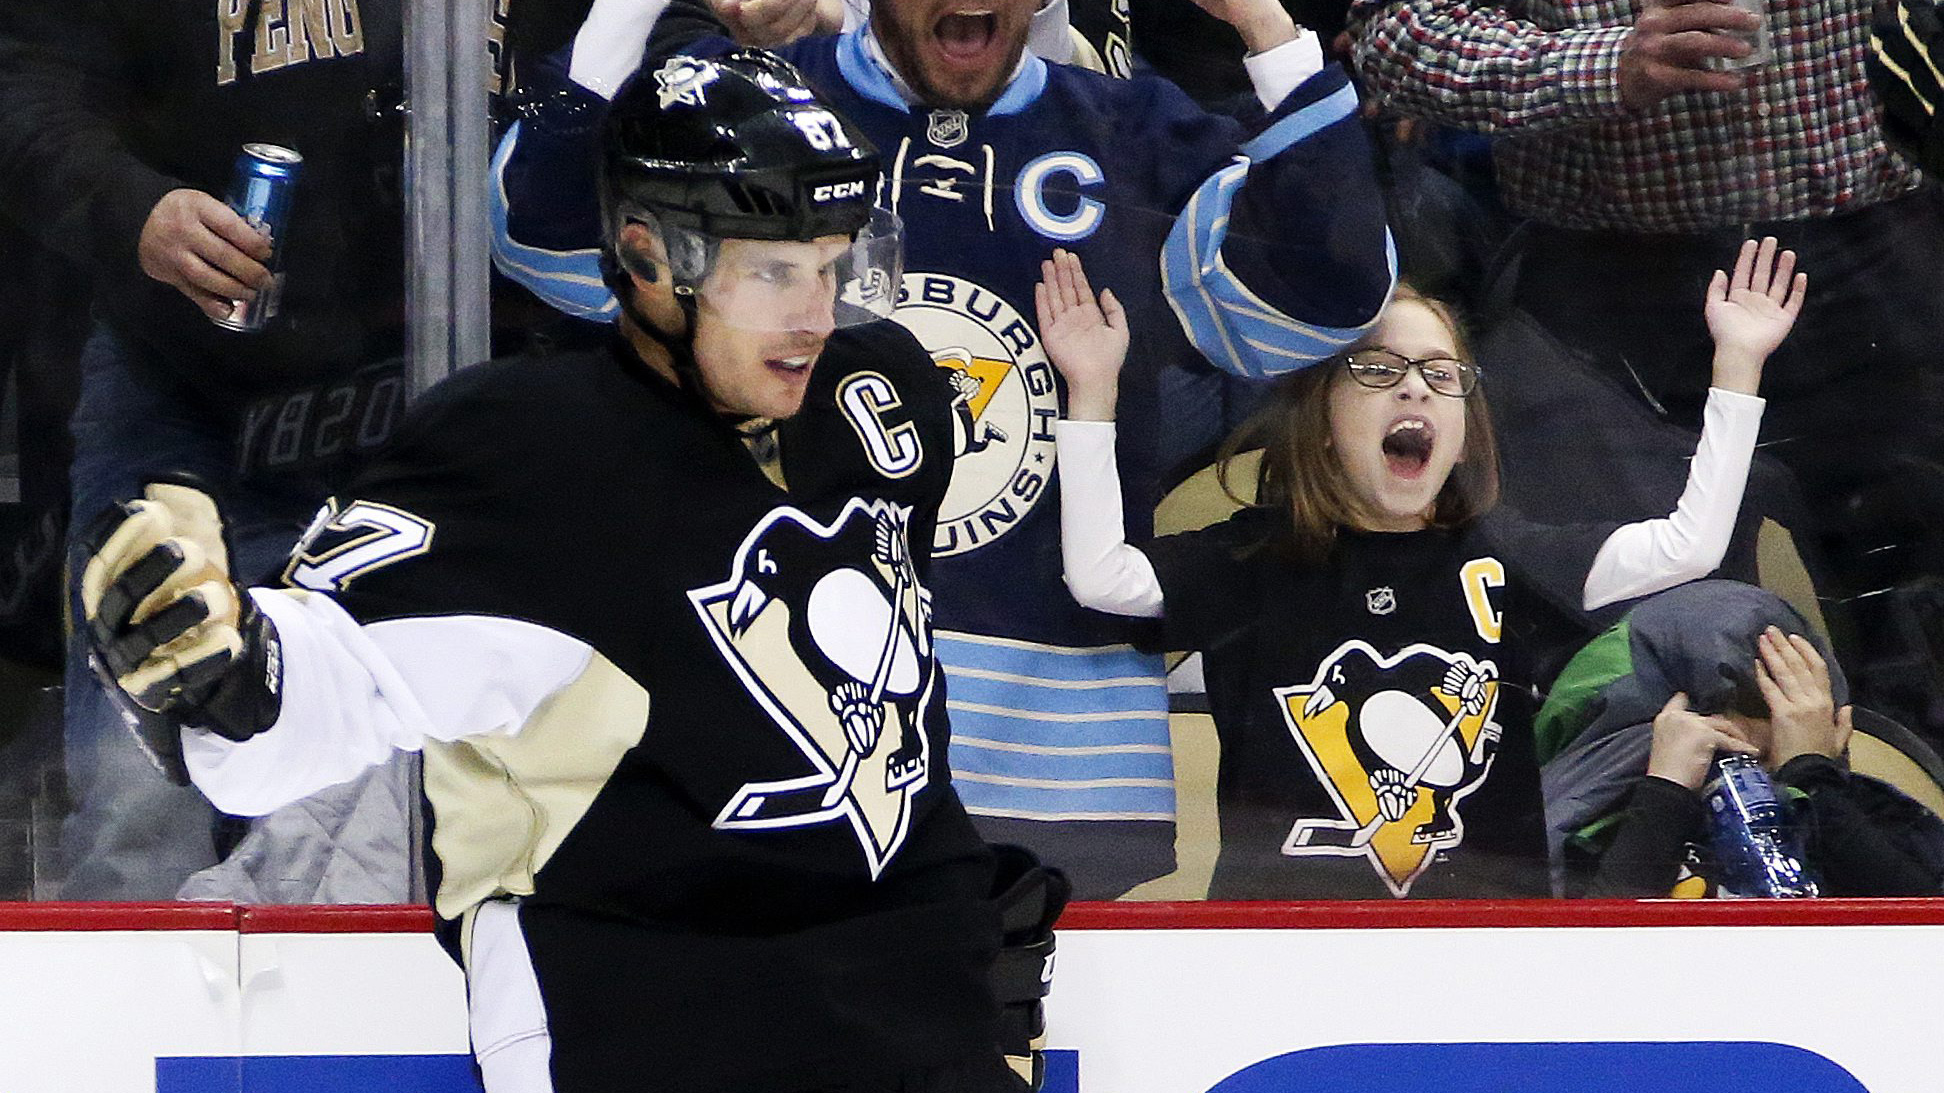 Stanley Cup Playoff Preview: Penguins vs. Rangers